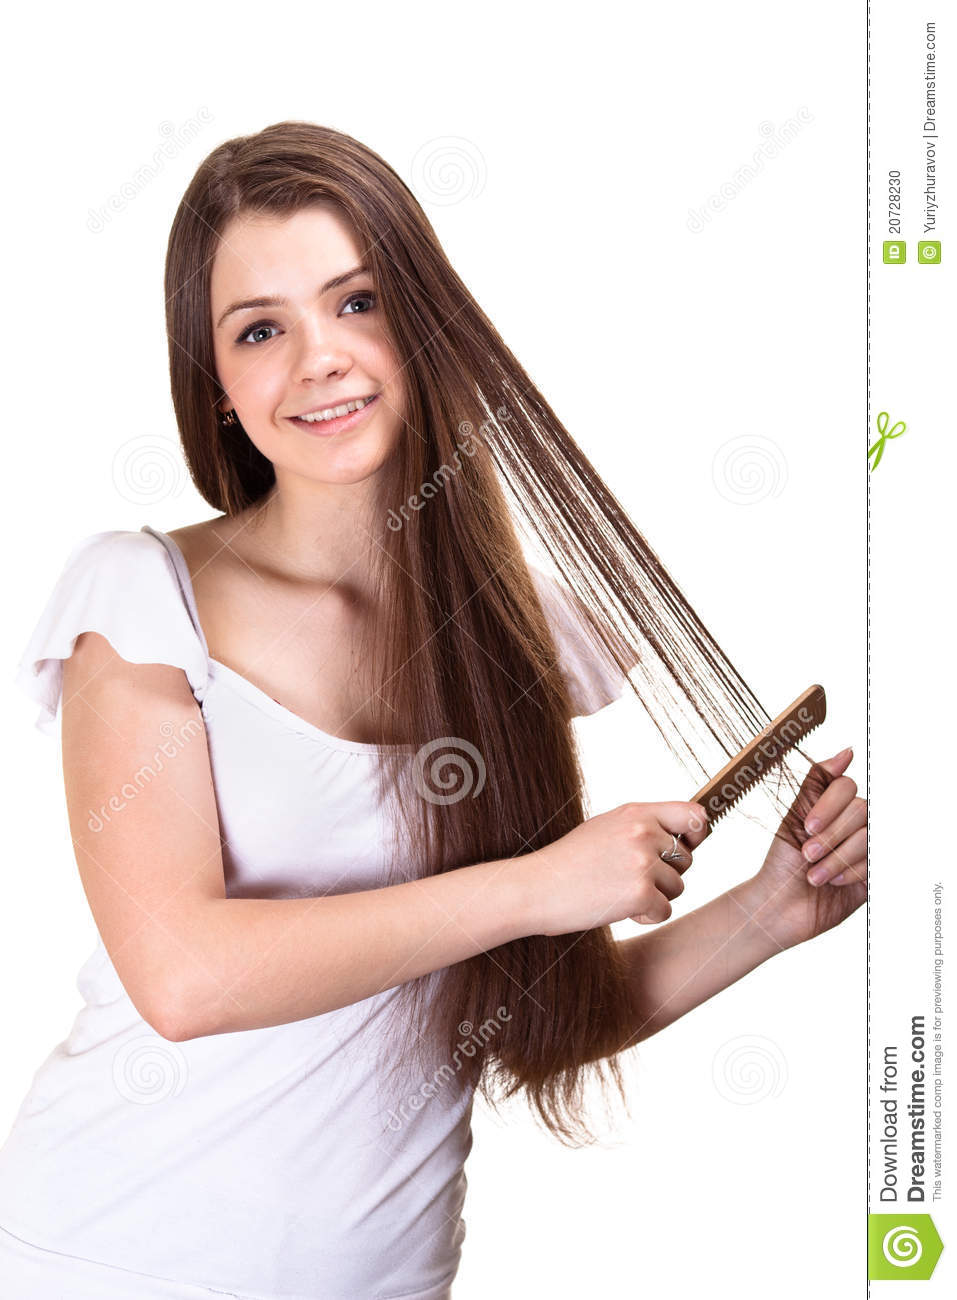 More similar stock images of beautiful youth teen girl with comb